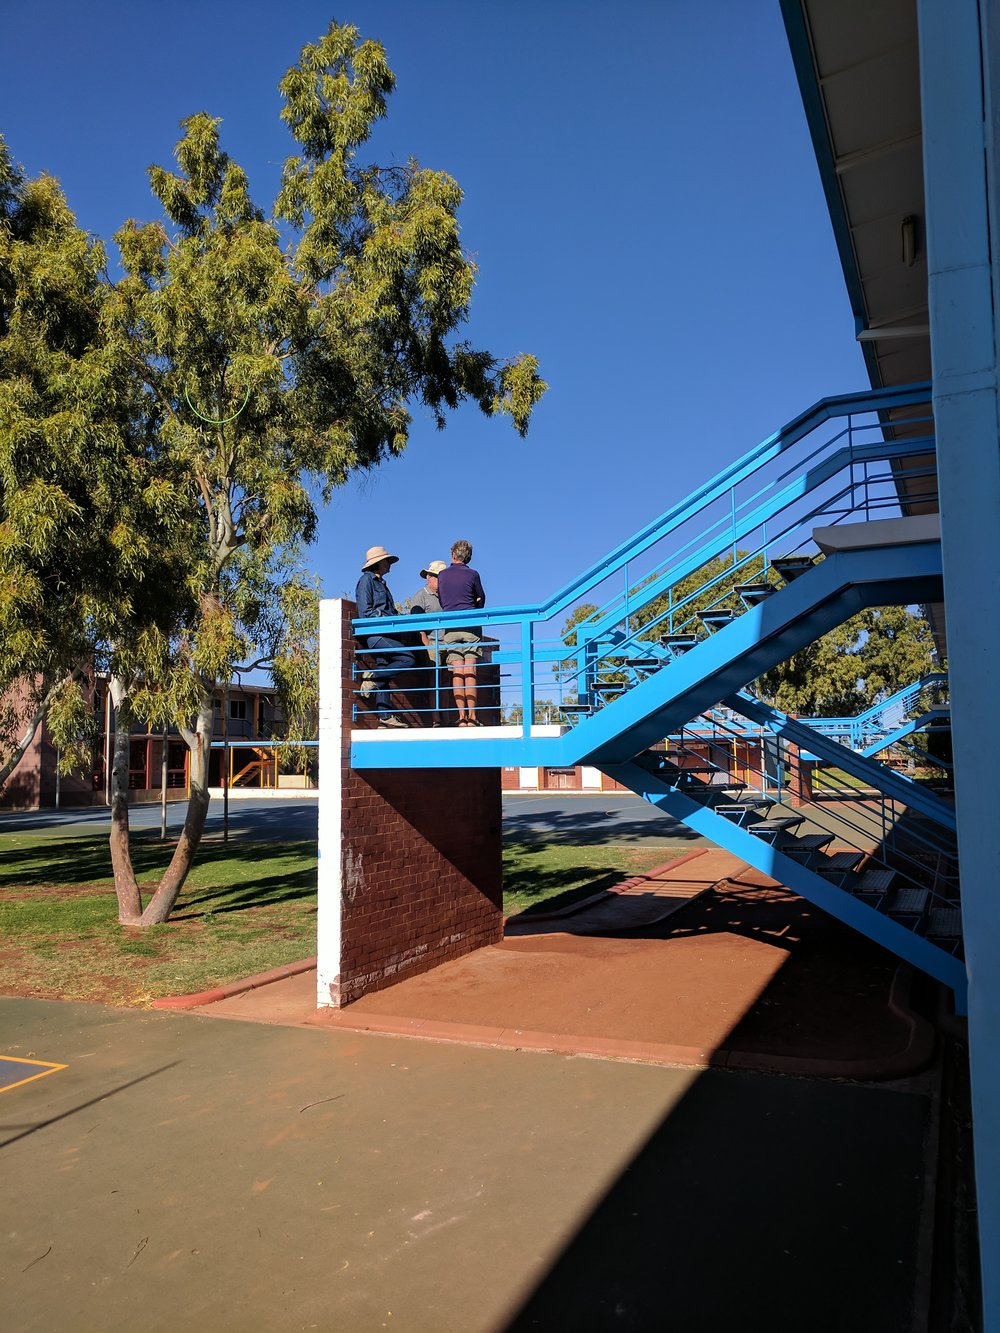 Meekatharra Primary School